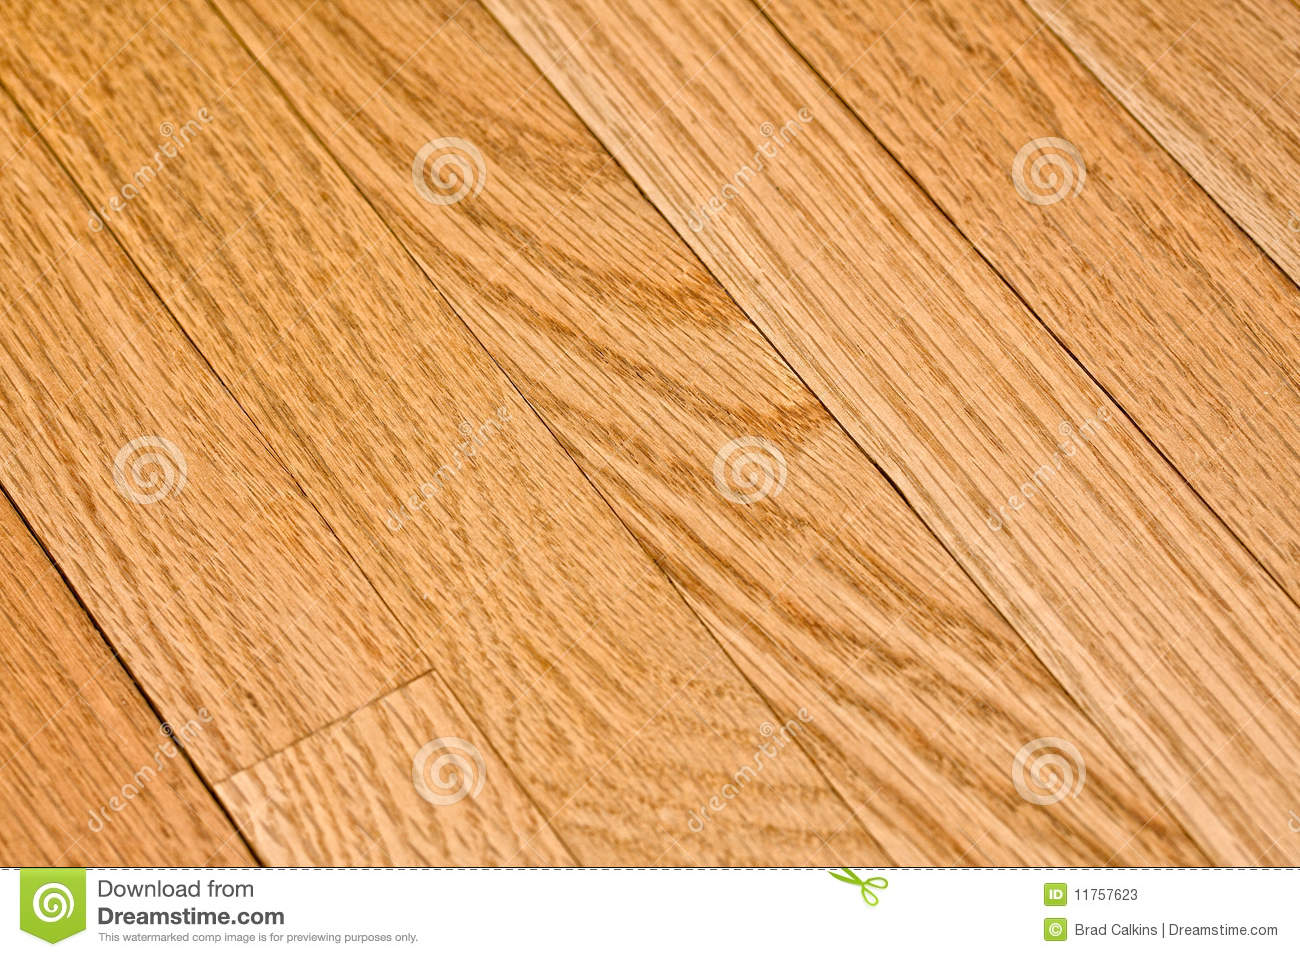 Oak floor stock photos image 11757623 Unstained hardwood floors